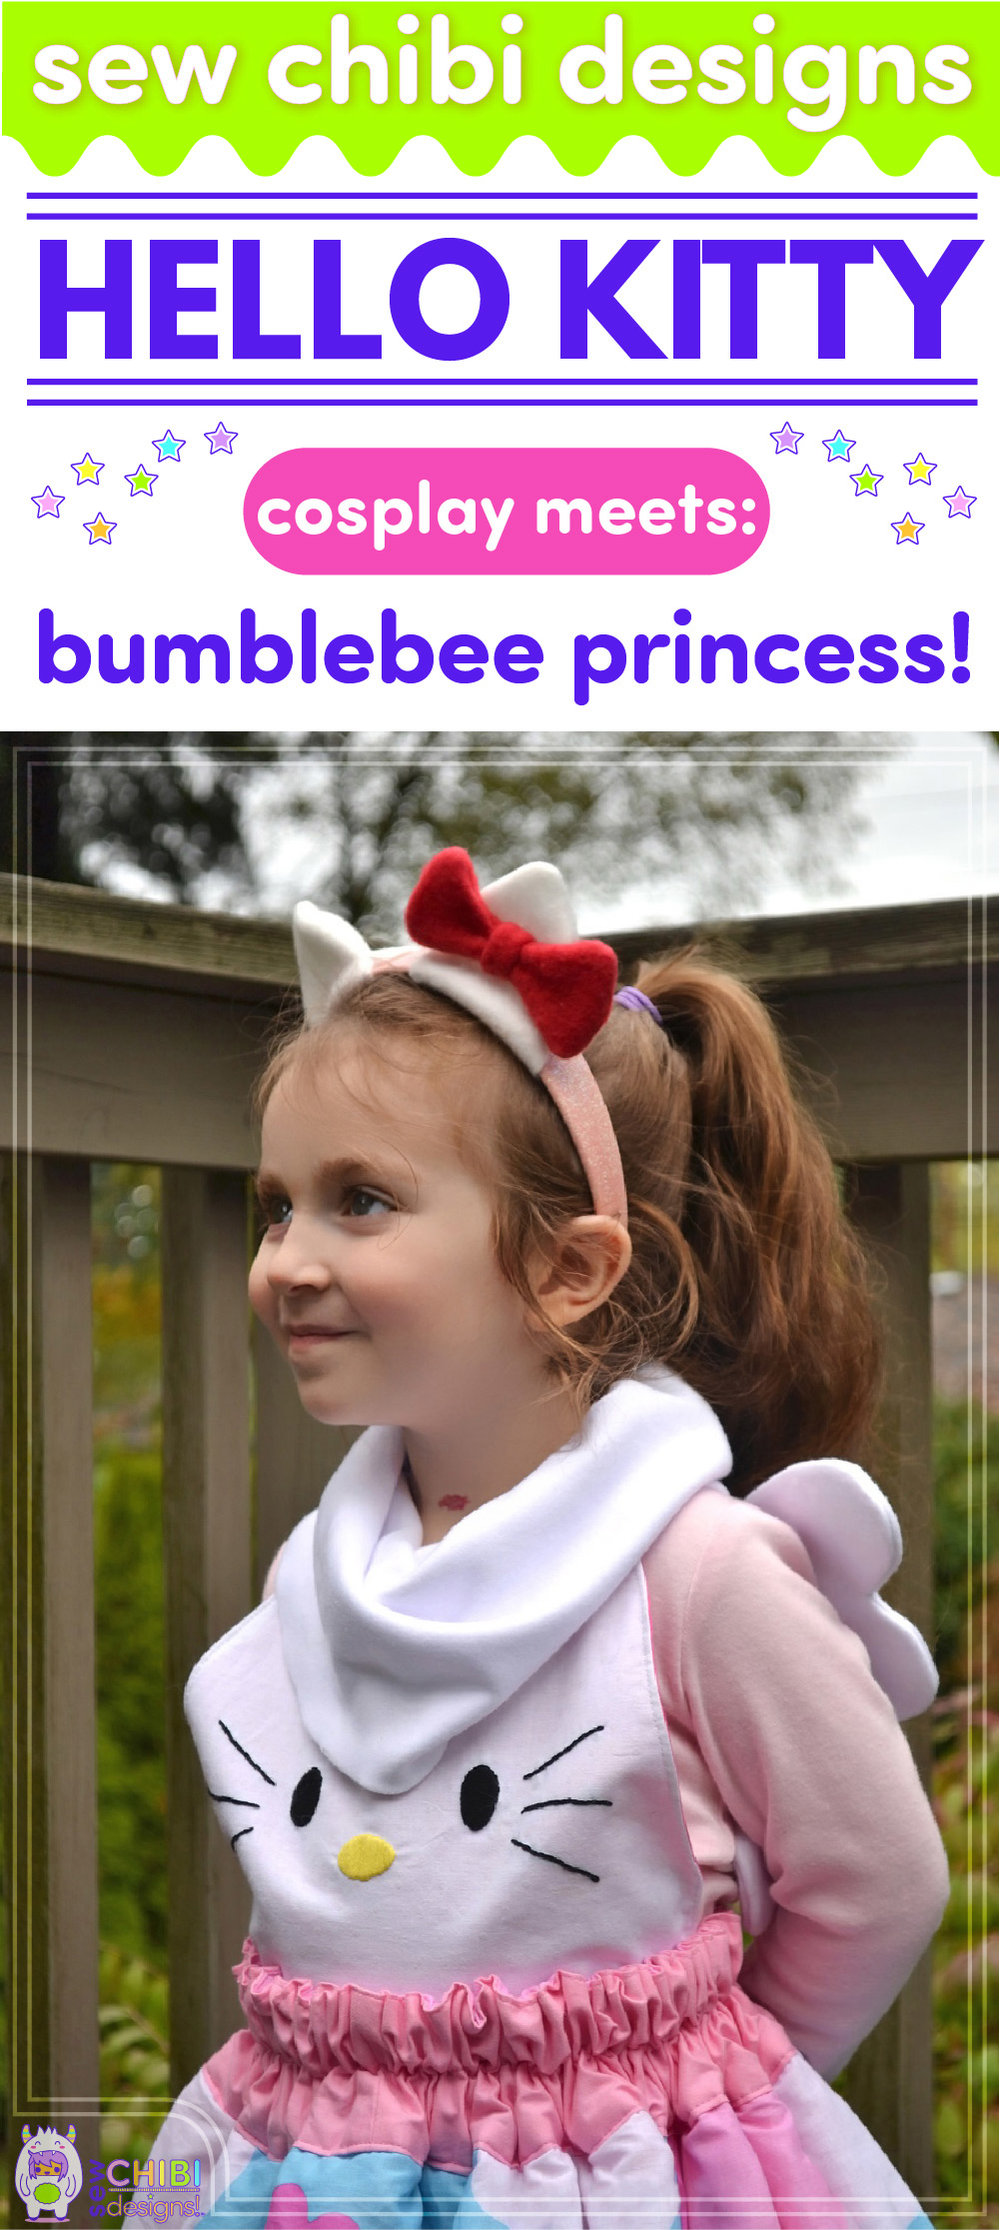 Hello Kitty Princess Bumblebee chibi cosplay sewn by Sew Chibi Designs for Sew Geeky